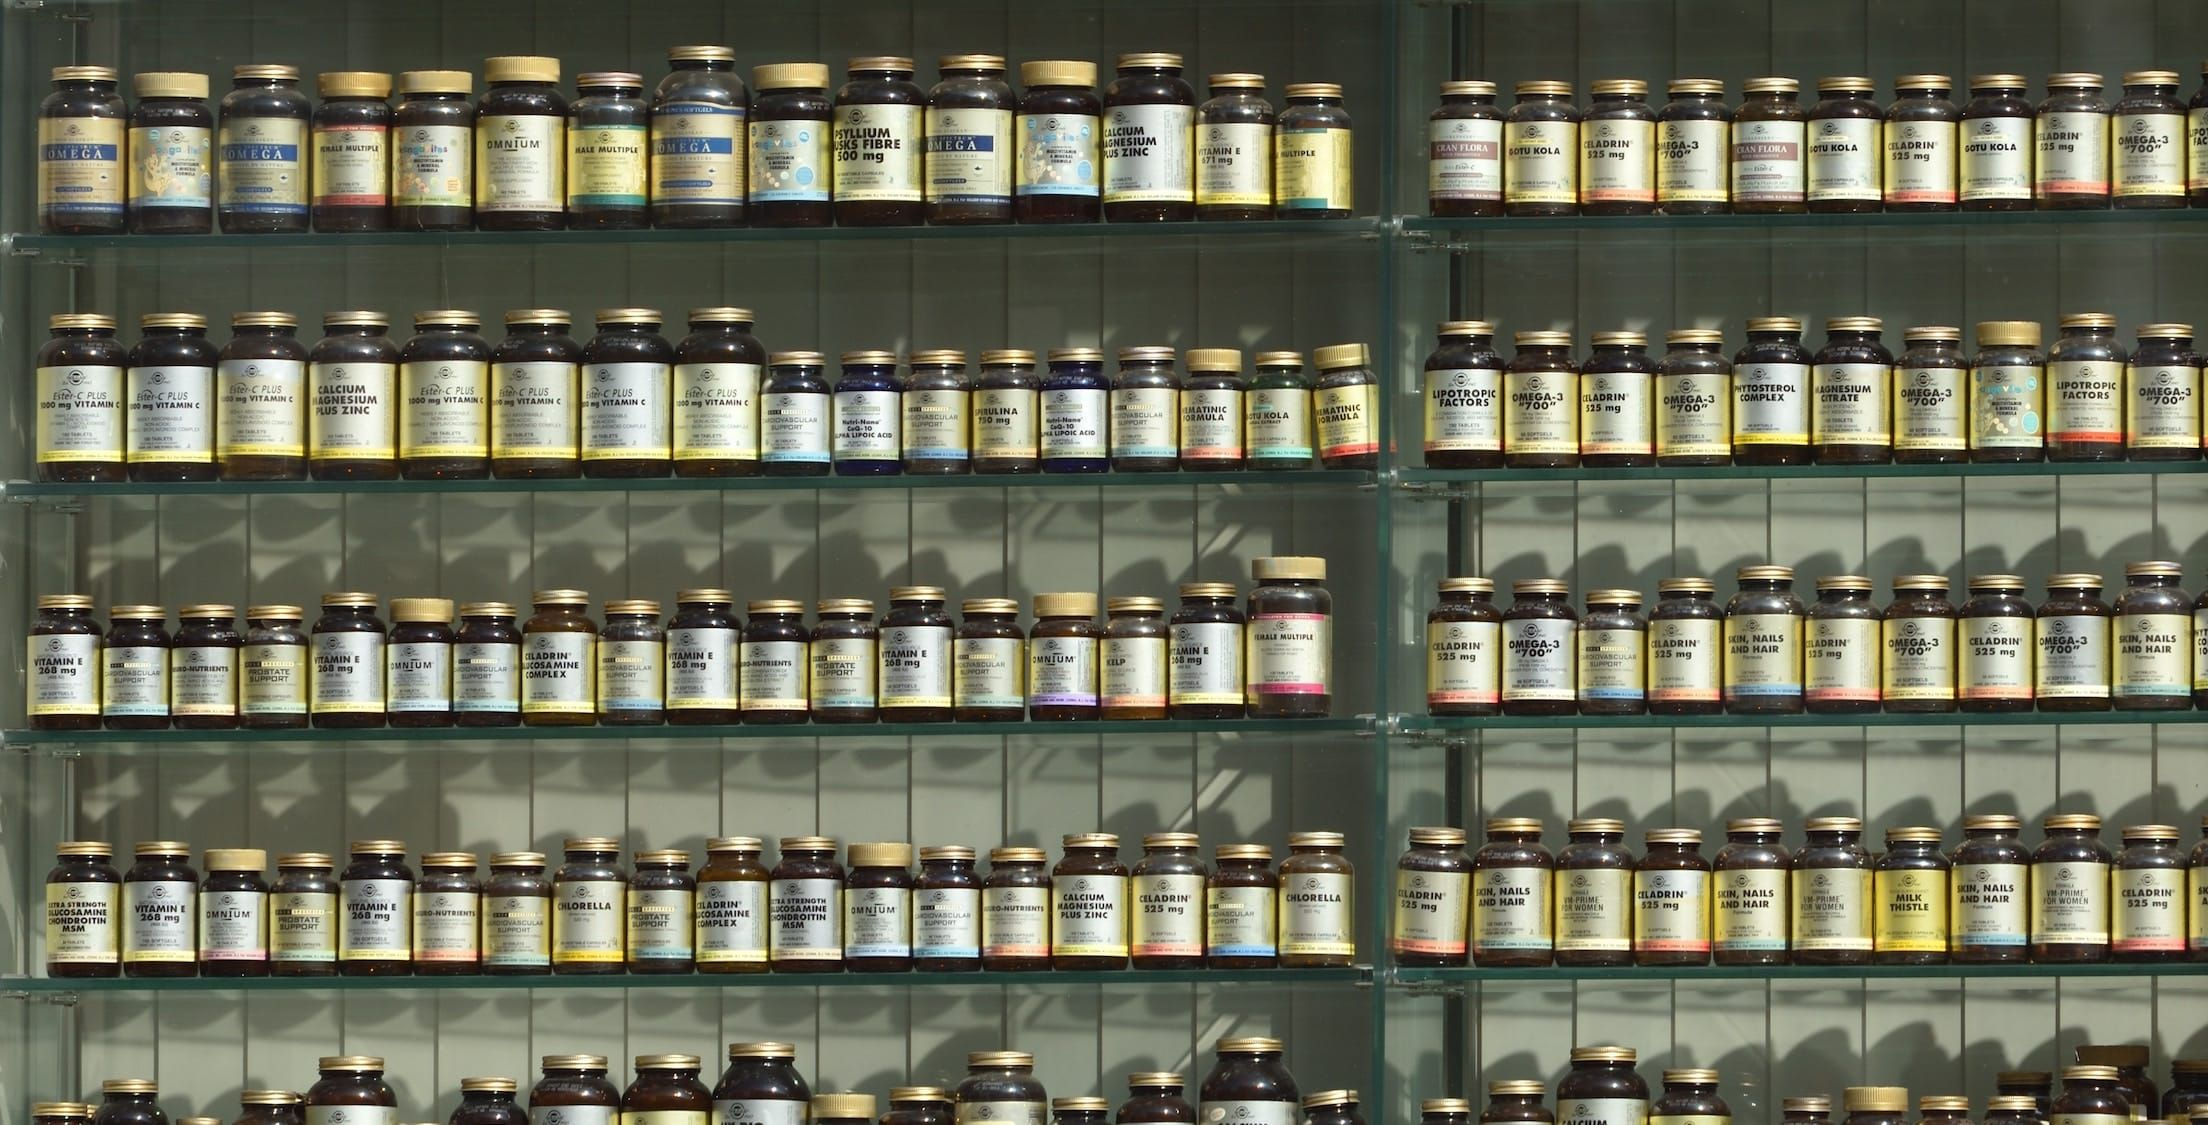 The 6 supplements you should probably ask your doctor about